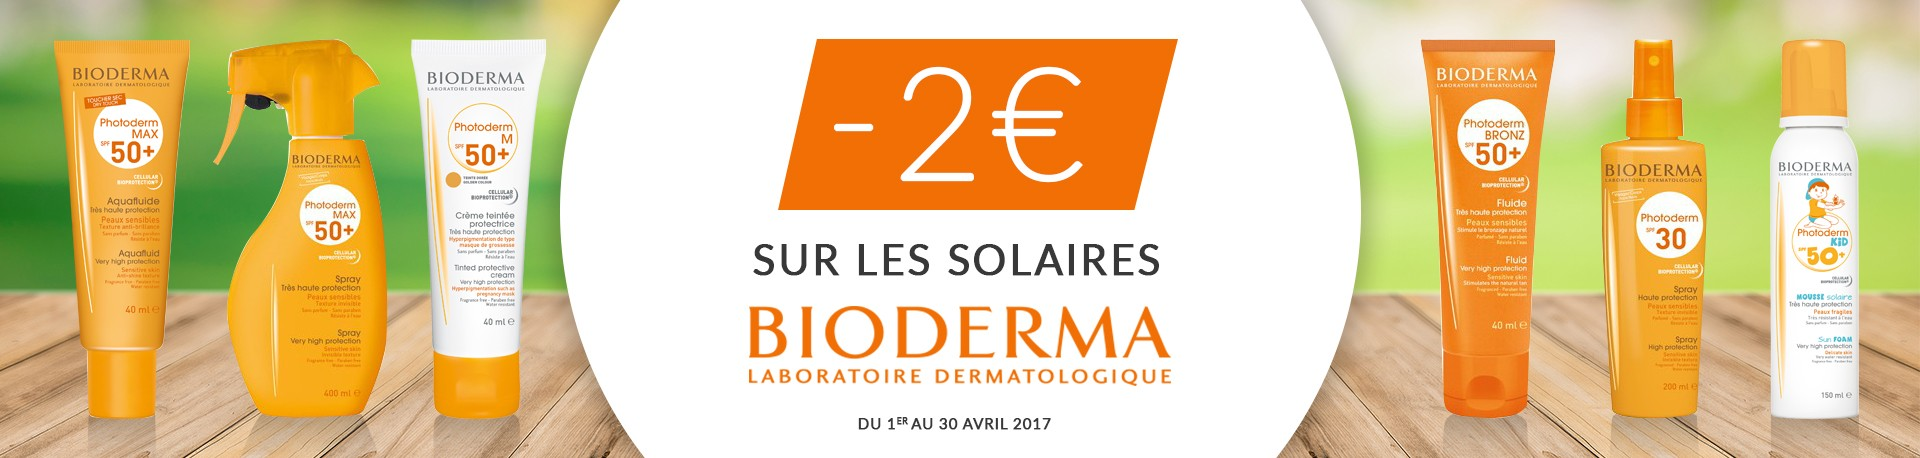 bioderma solaire avril